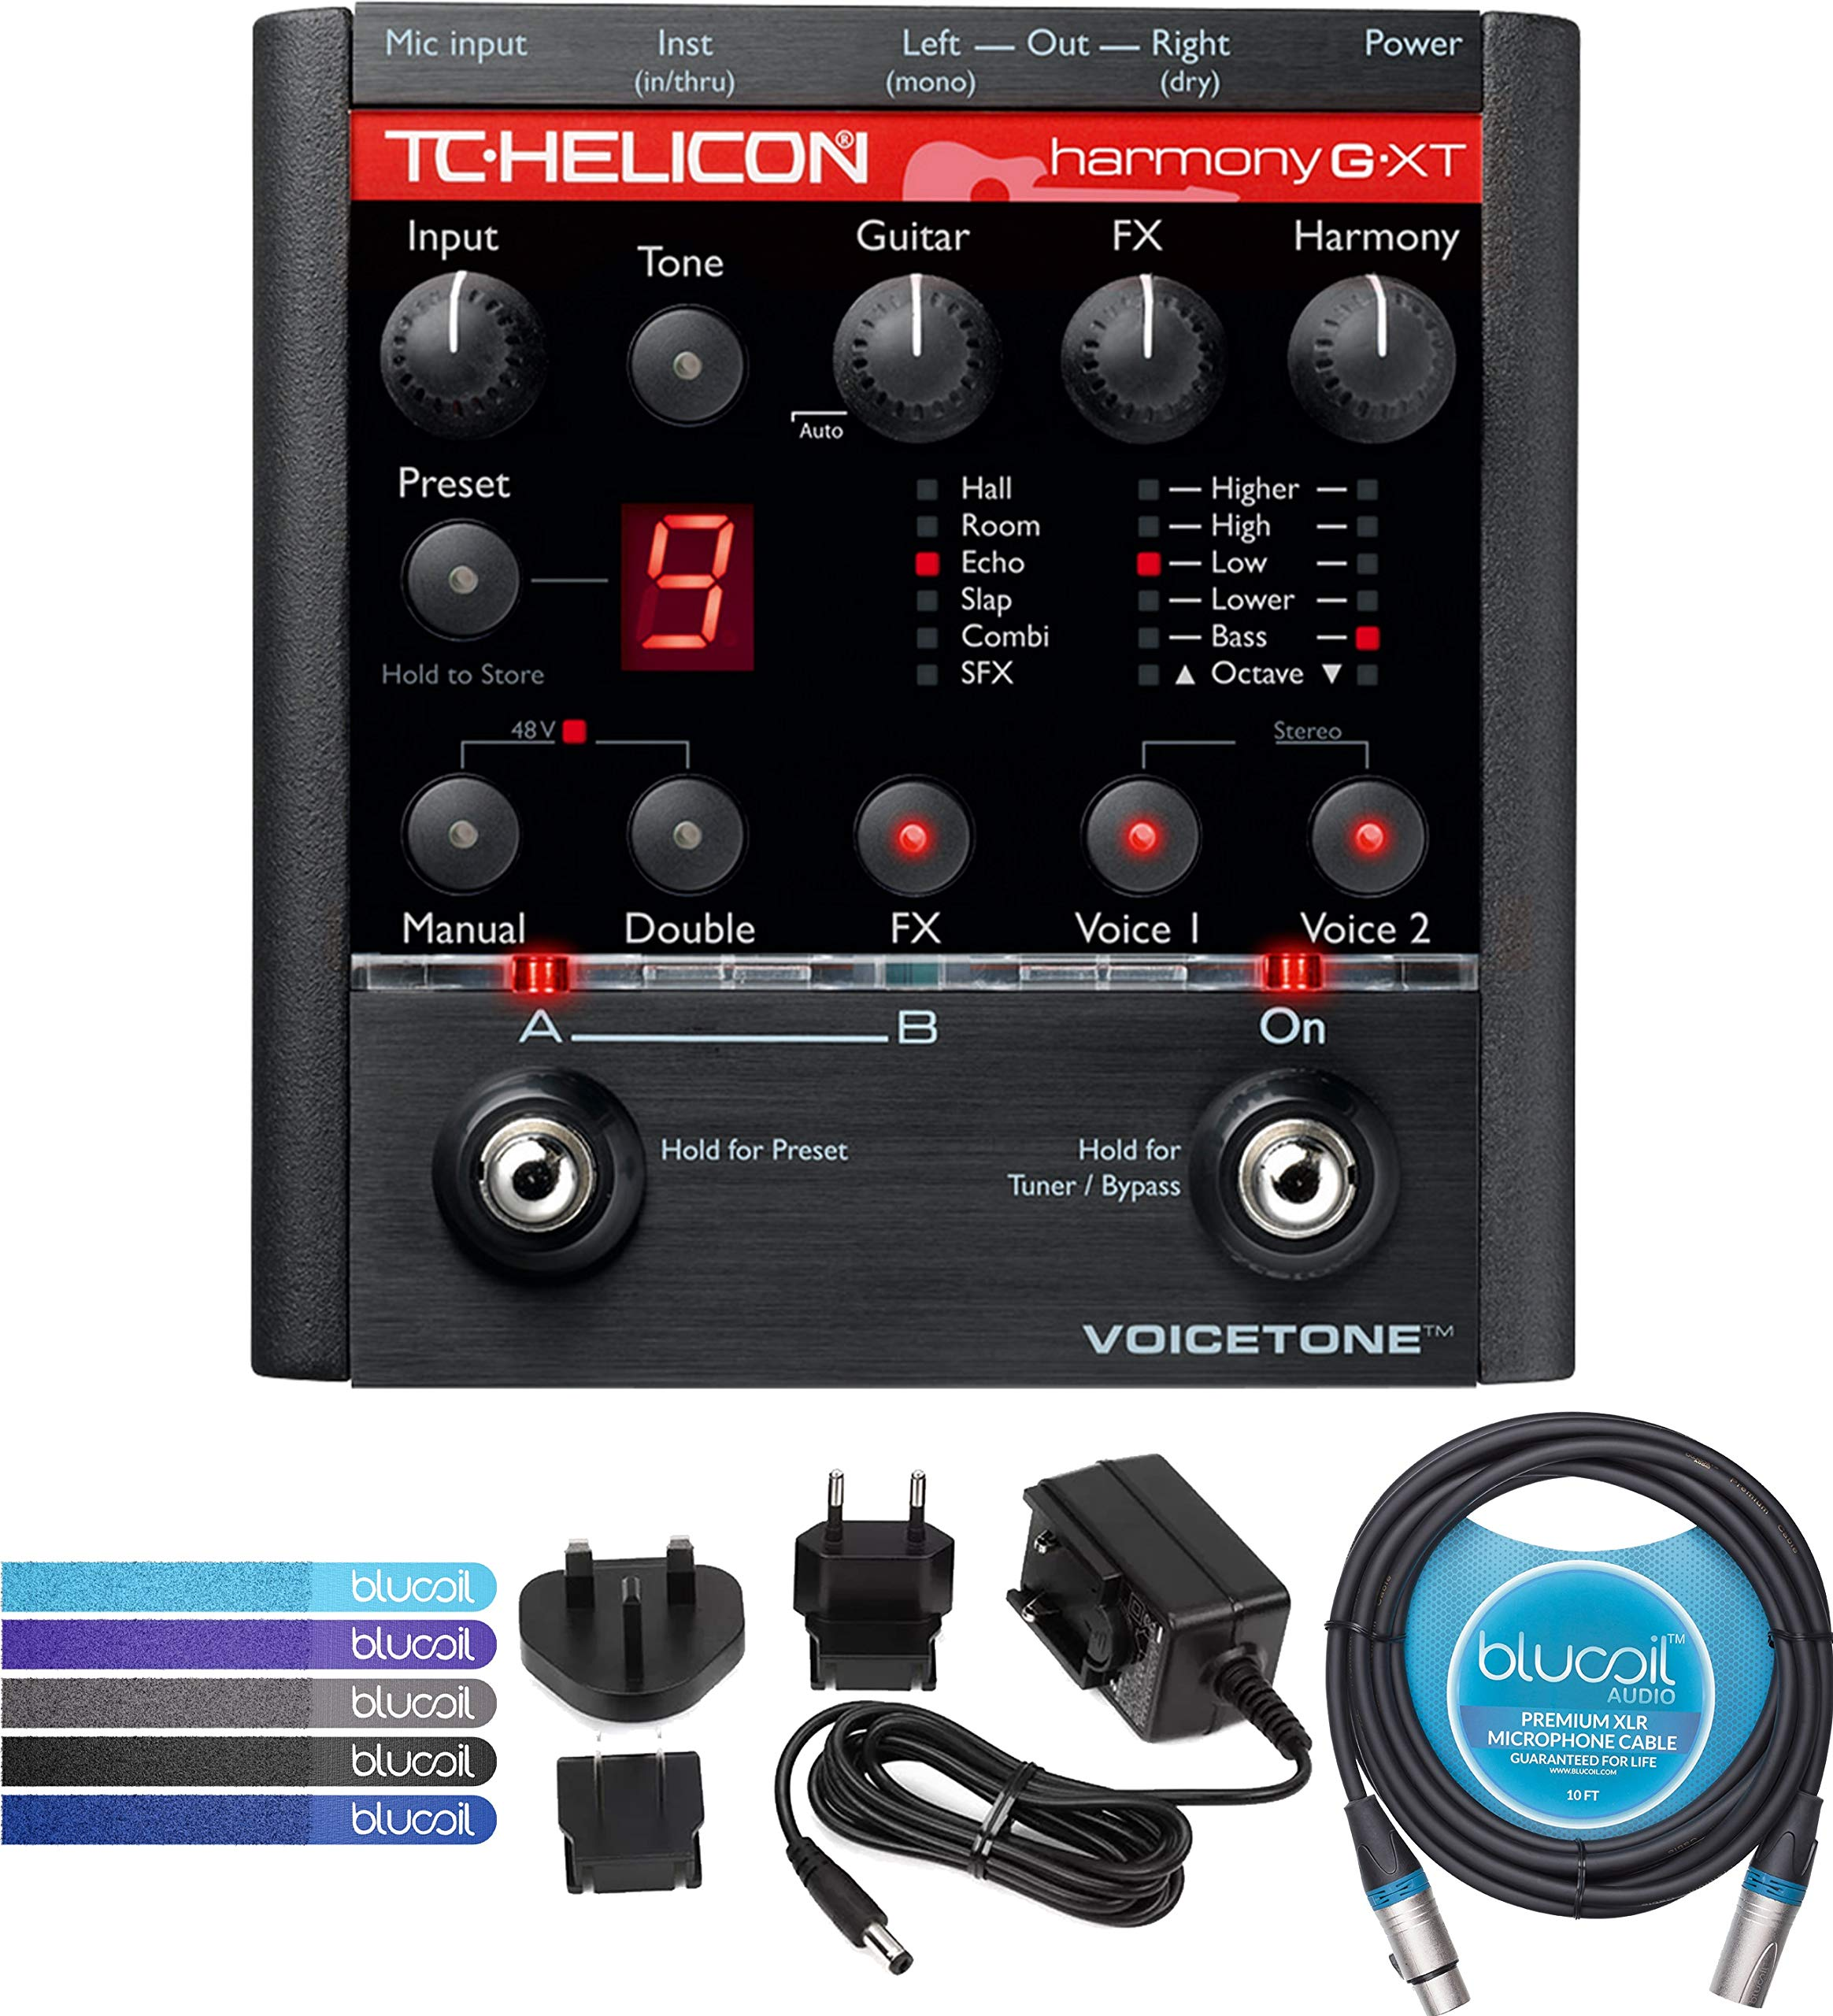 TC Helicon VoiceTone Harmony-G XT Vocal Effects Pedal Bundle with 12V Power Supply (Tip Negative Center), Blucoil 10-FT Balanced XLR Cable, and 5-Pack of Reusable Cable Ties by blucoil